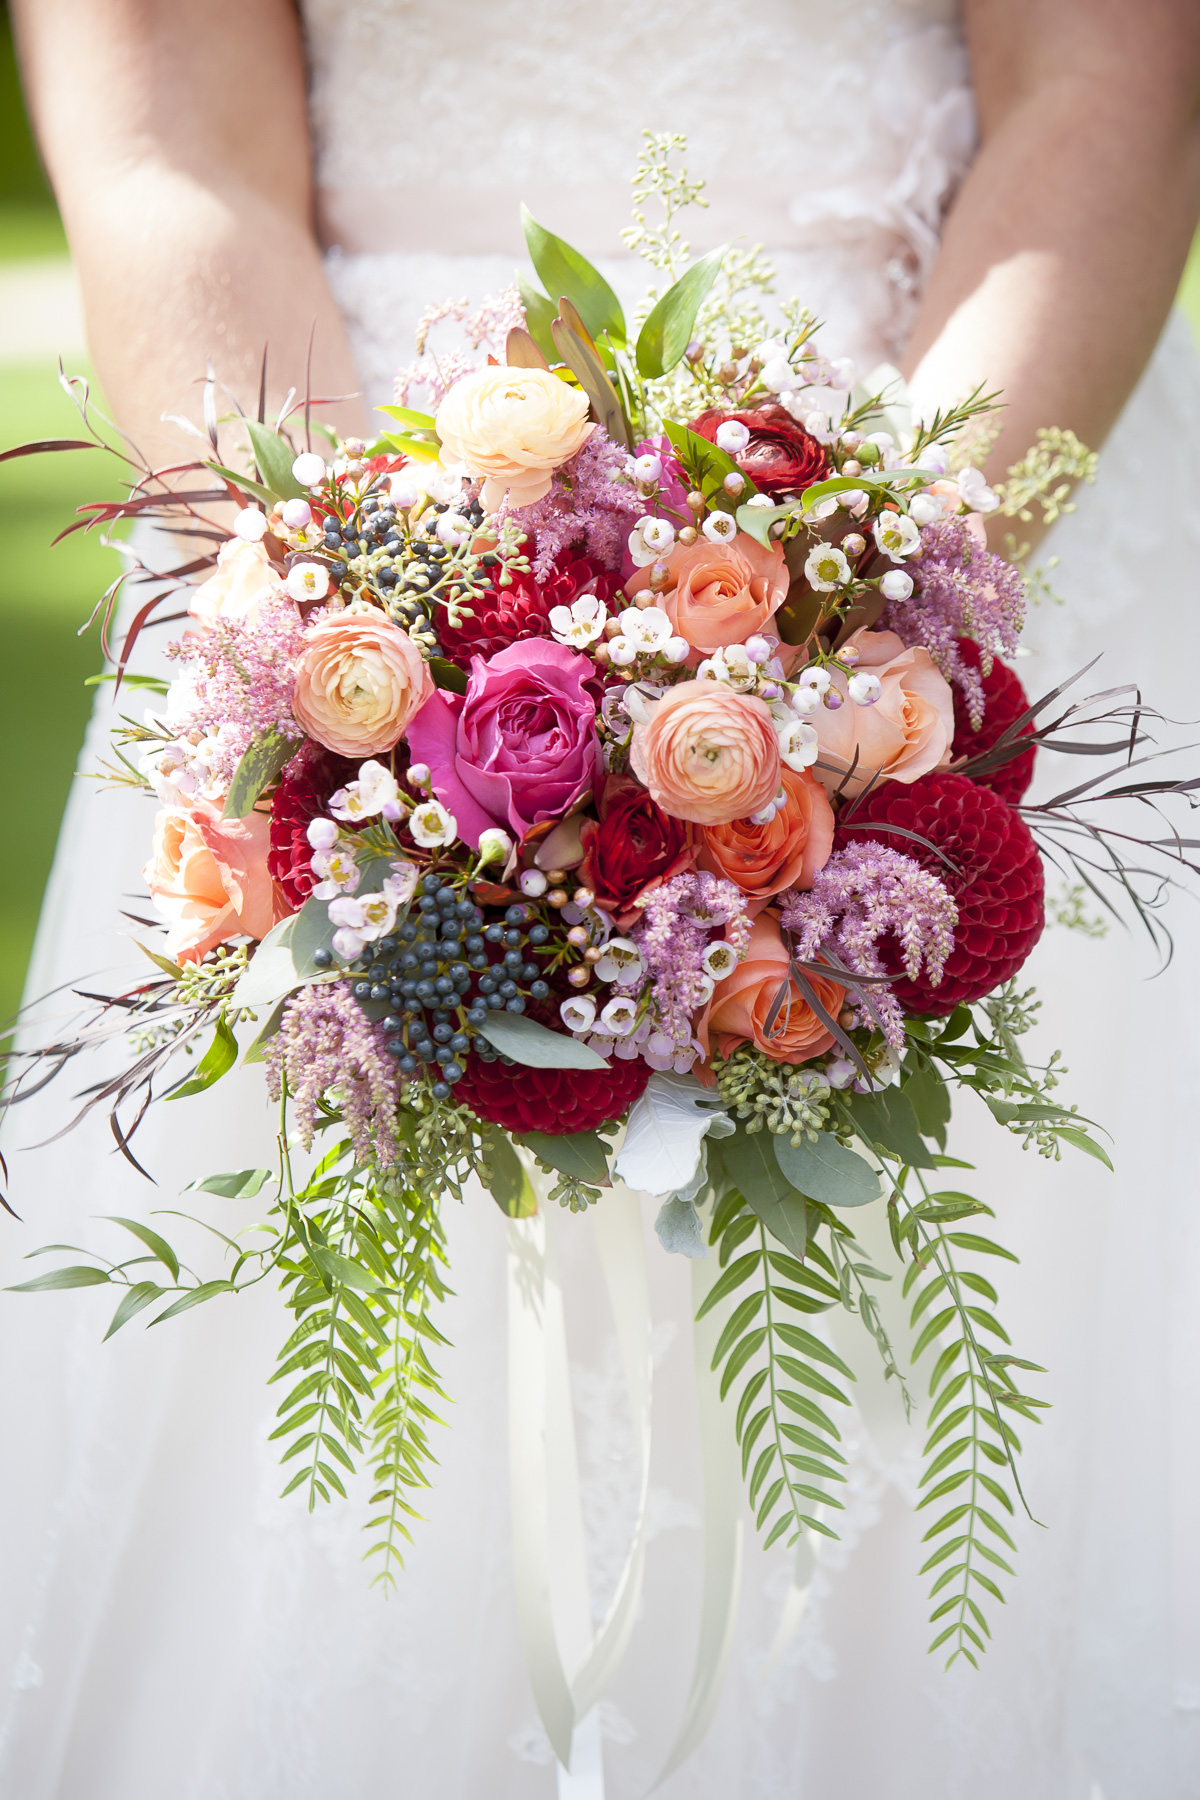 Wedding bouquet with red and pink peonies by Colorado wedding florist Twigs + Posies